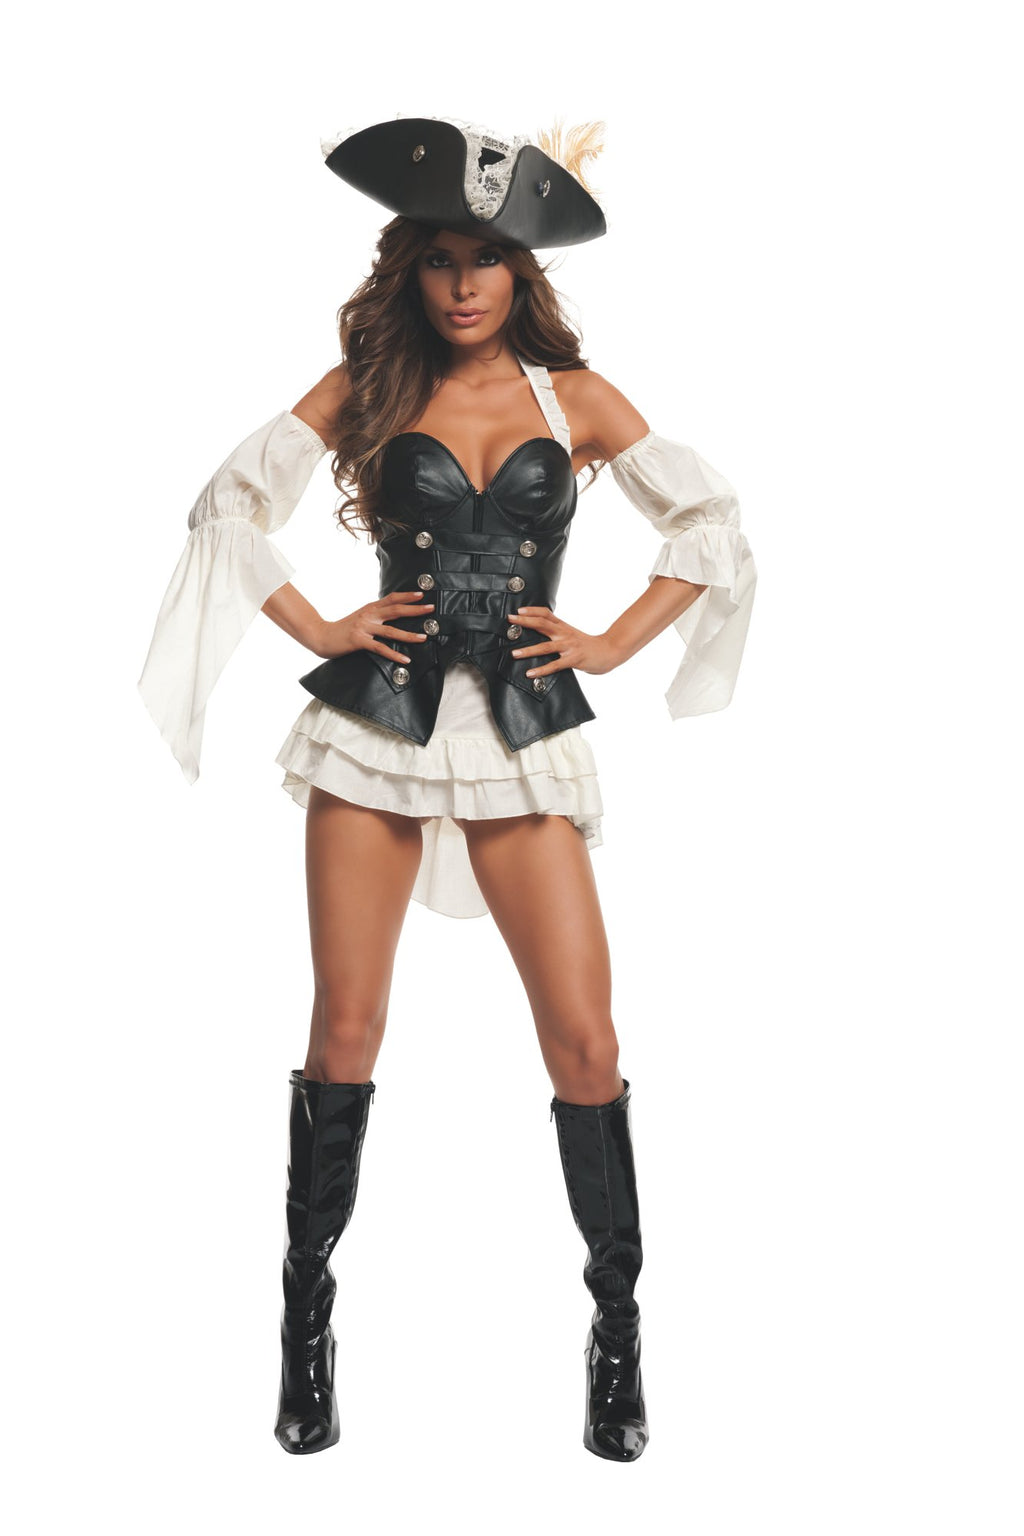 Starline Women's Black Pearl Pirate Costume Womens Adult Sized Costumes - Nastassy